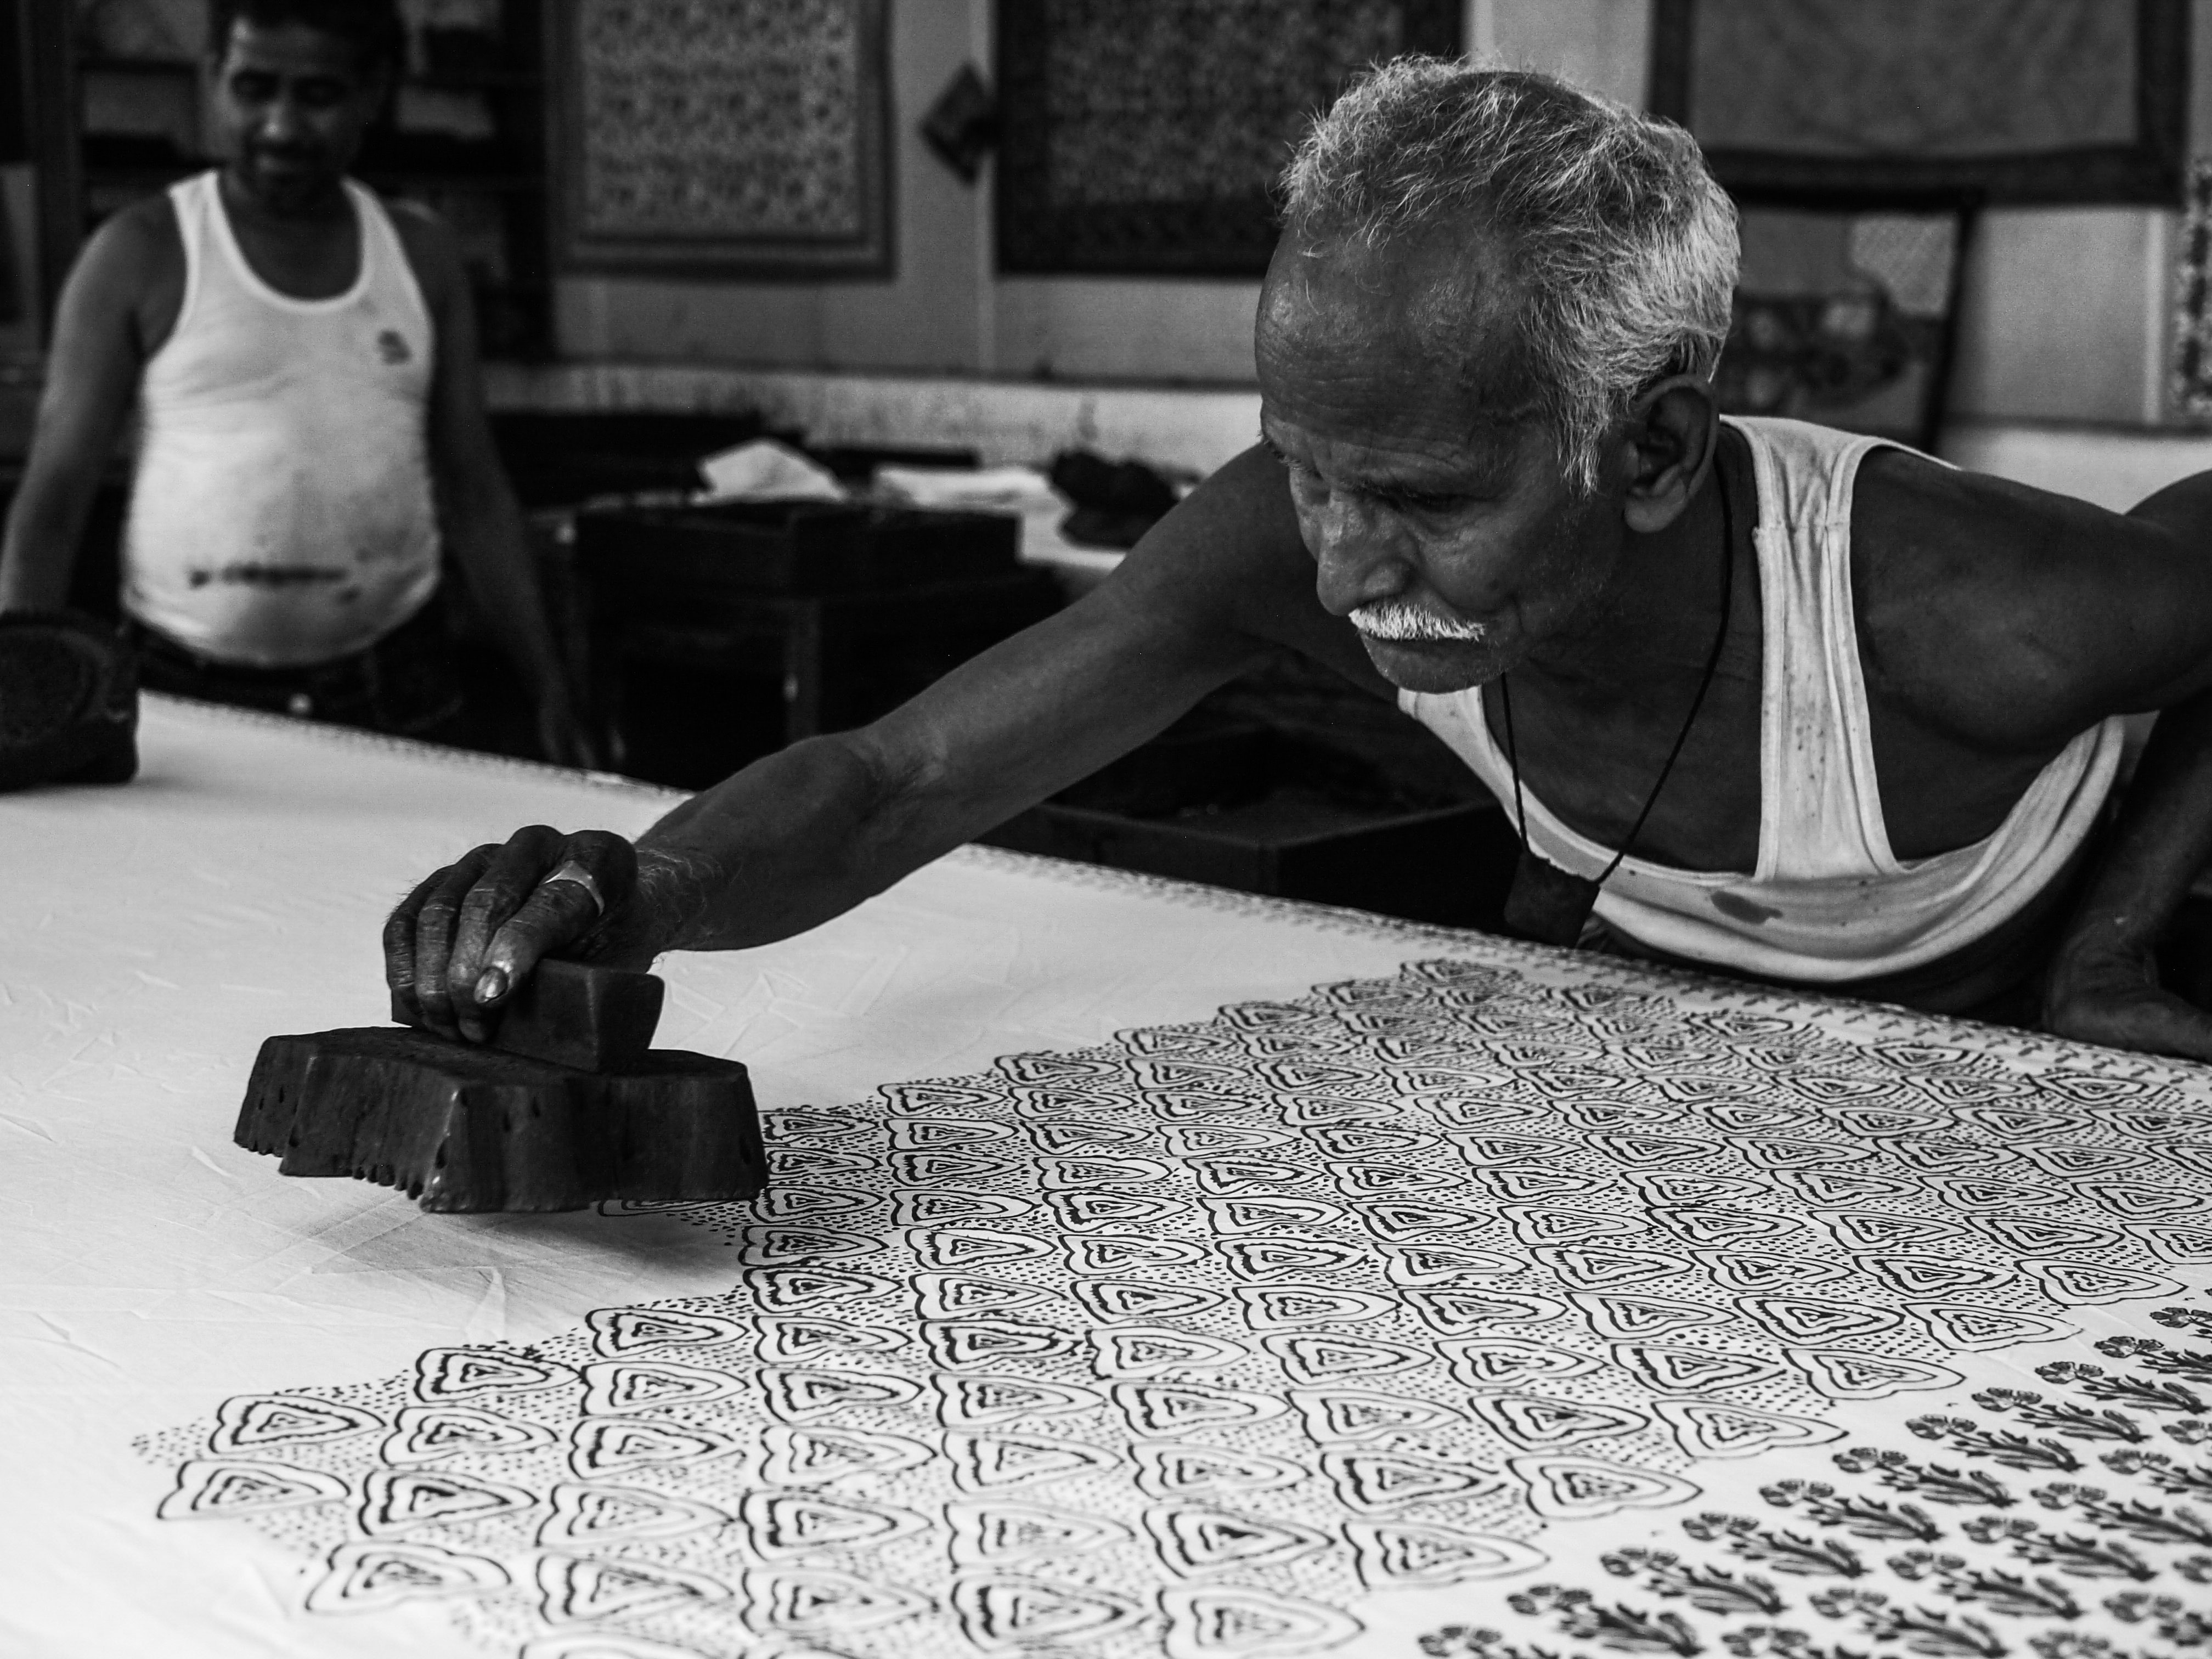 man stamping on white surface grayscale photography